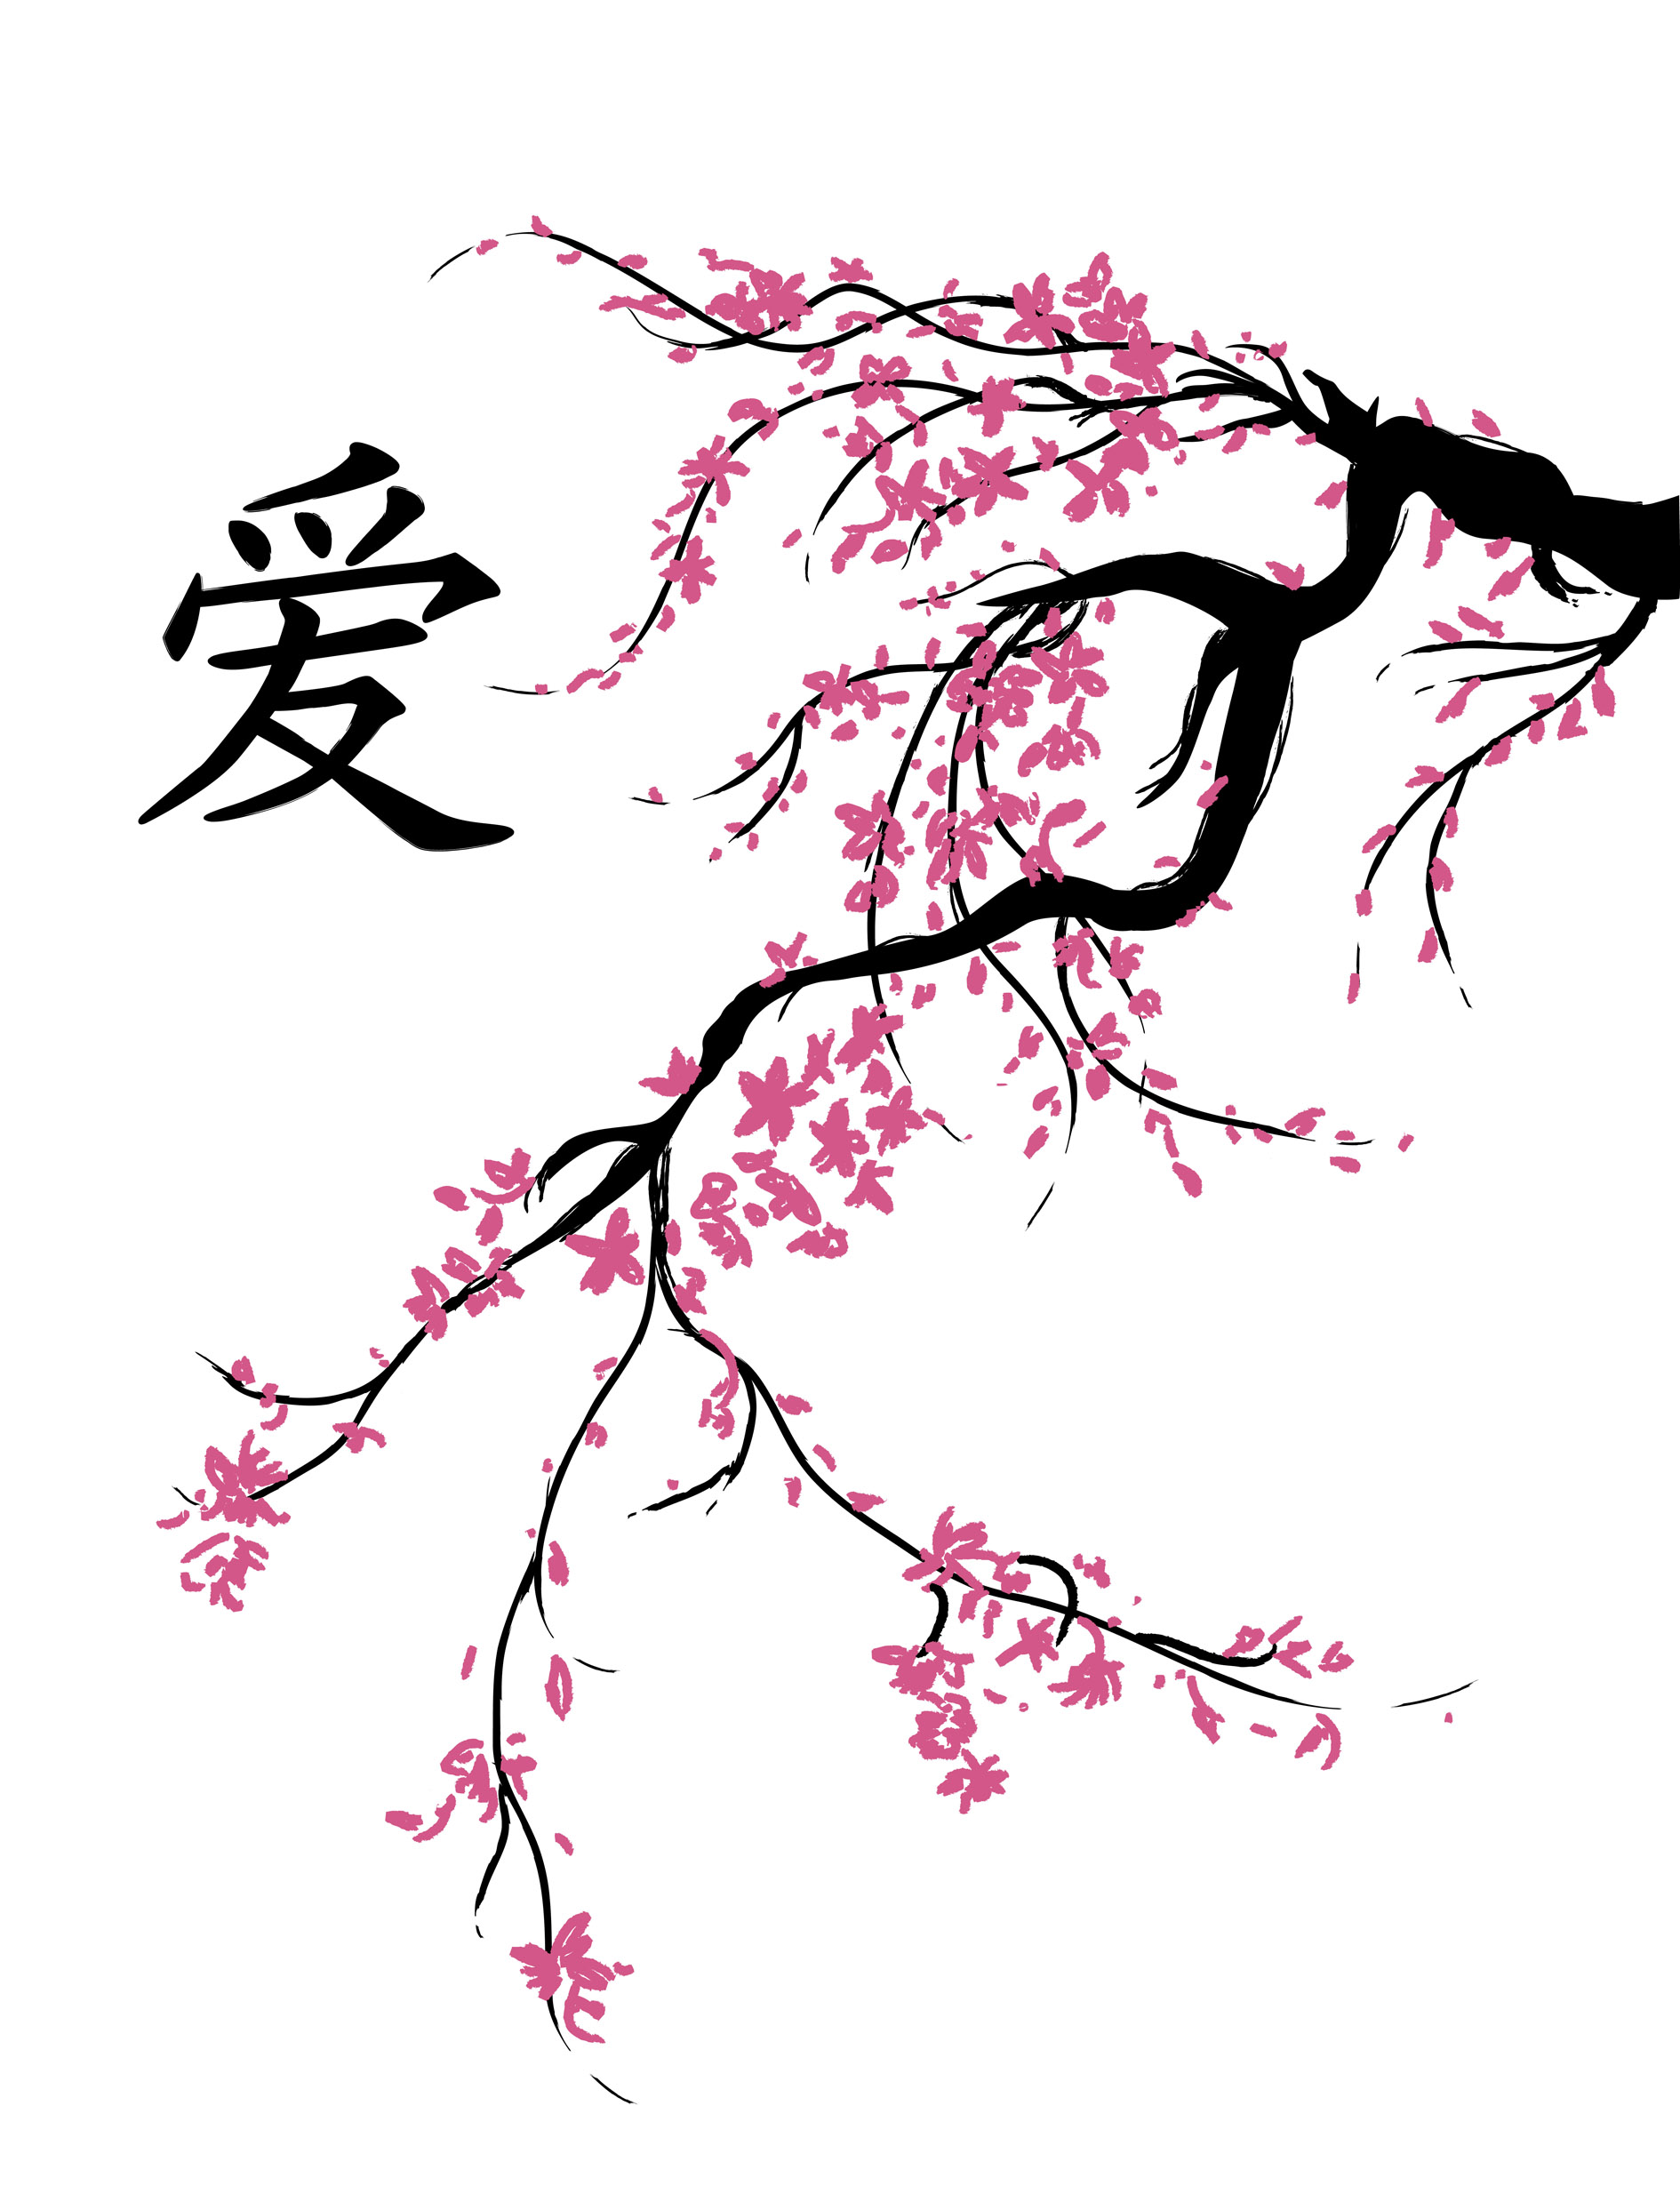 Drawn sakura blossom japanese drawing To The a beginnings is